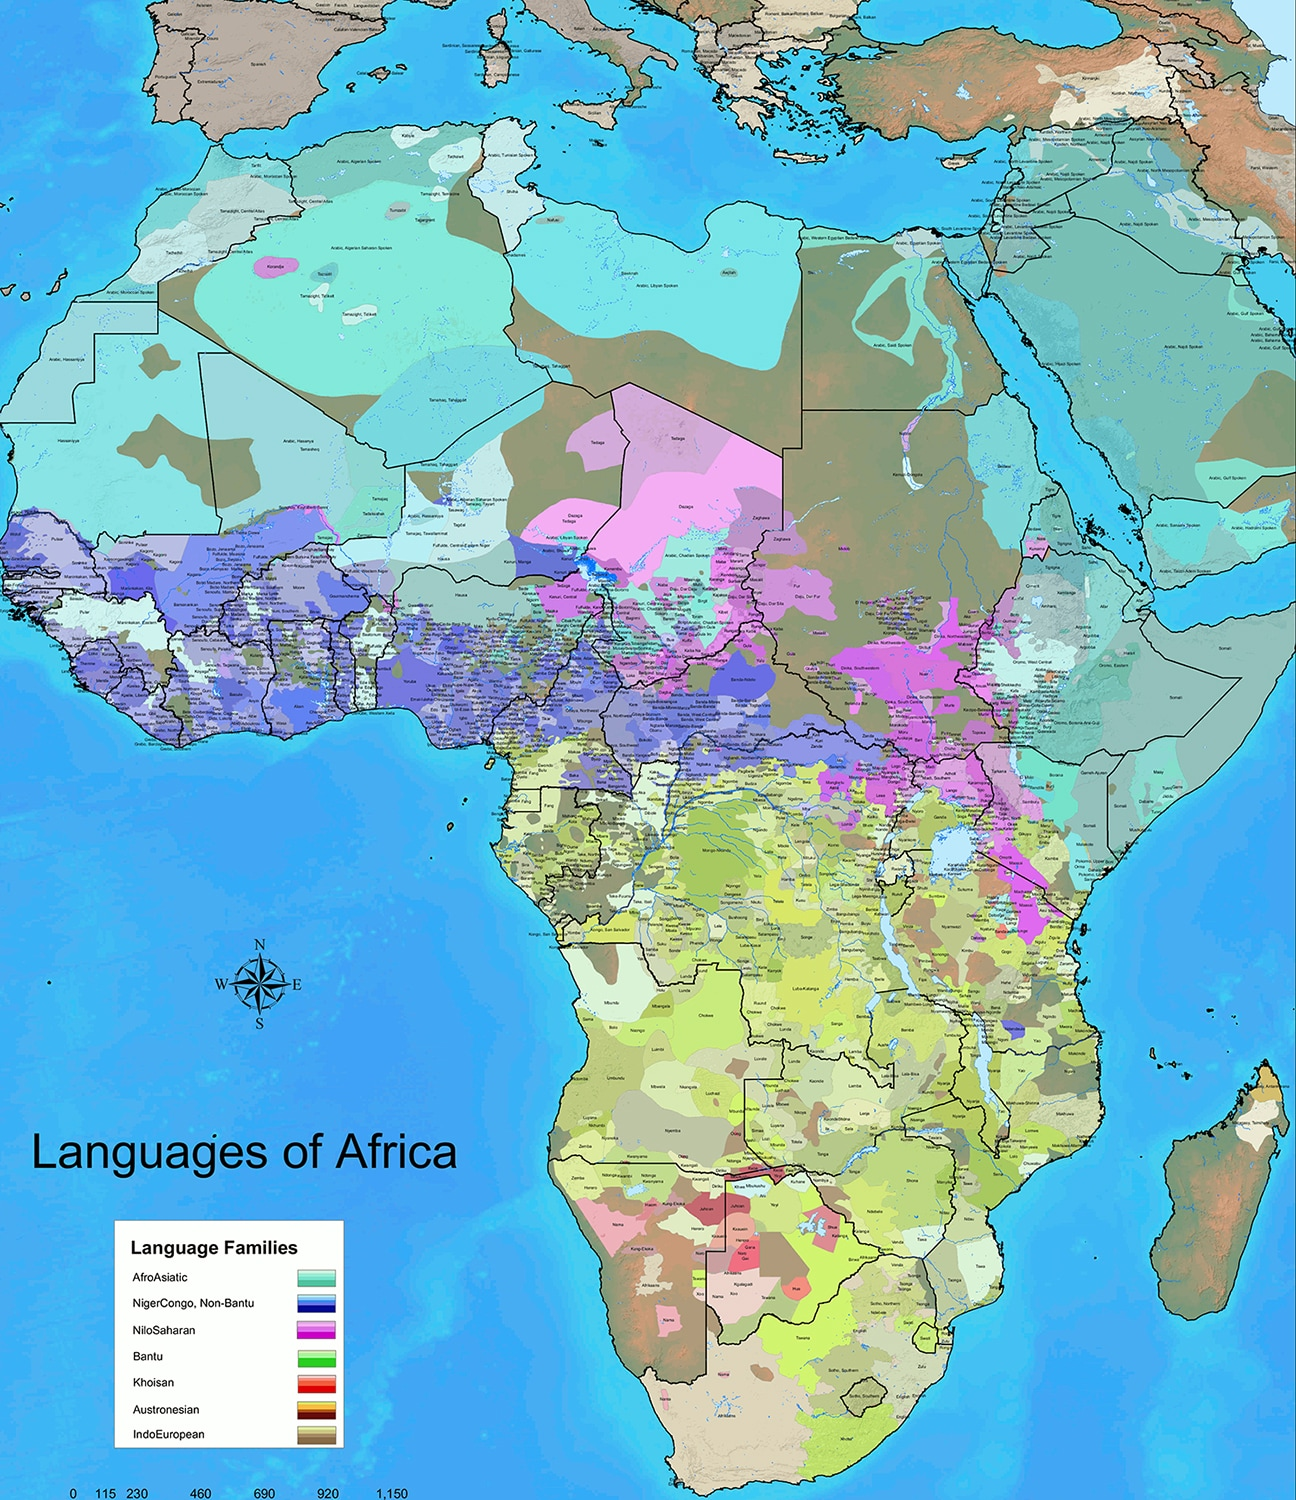 Data source: World Language Mapping System/Ethnologue. (Steve Huffman/WorldGeoDatasets)